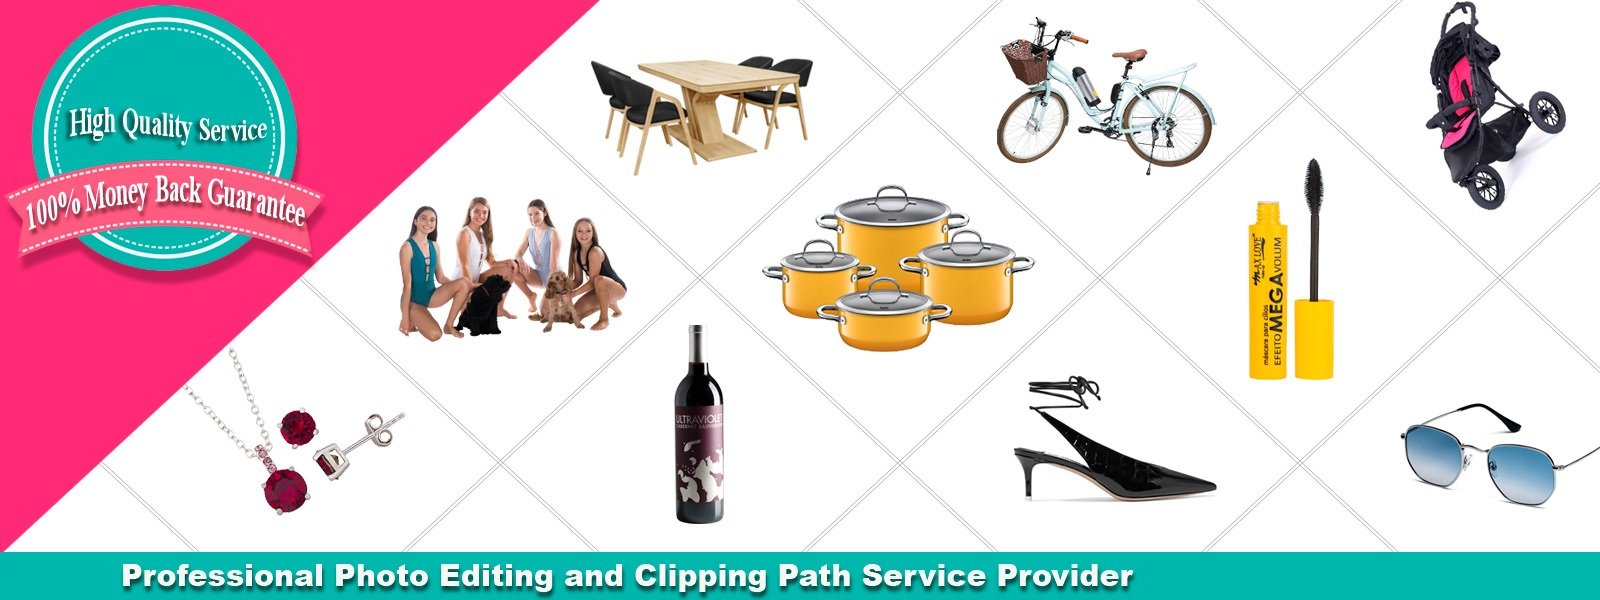 clipping solutions banner photo contains some work sample photos